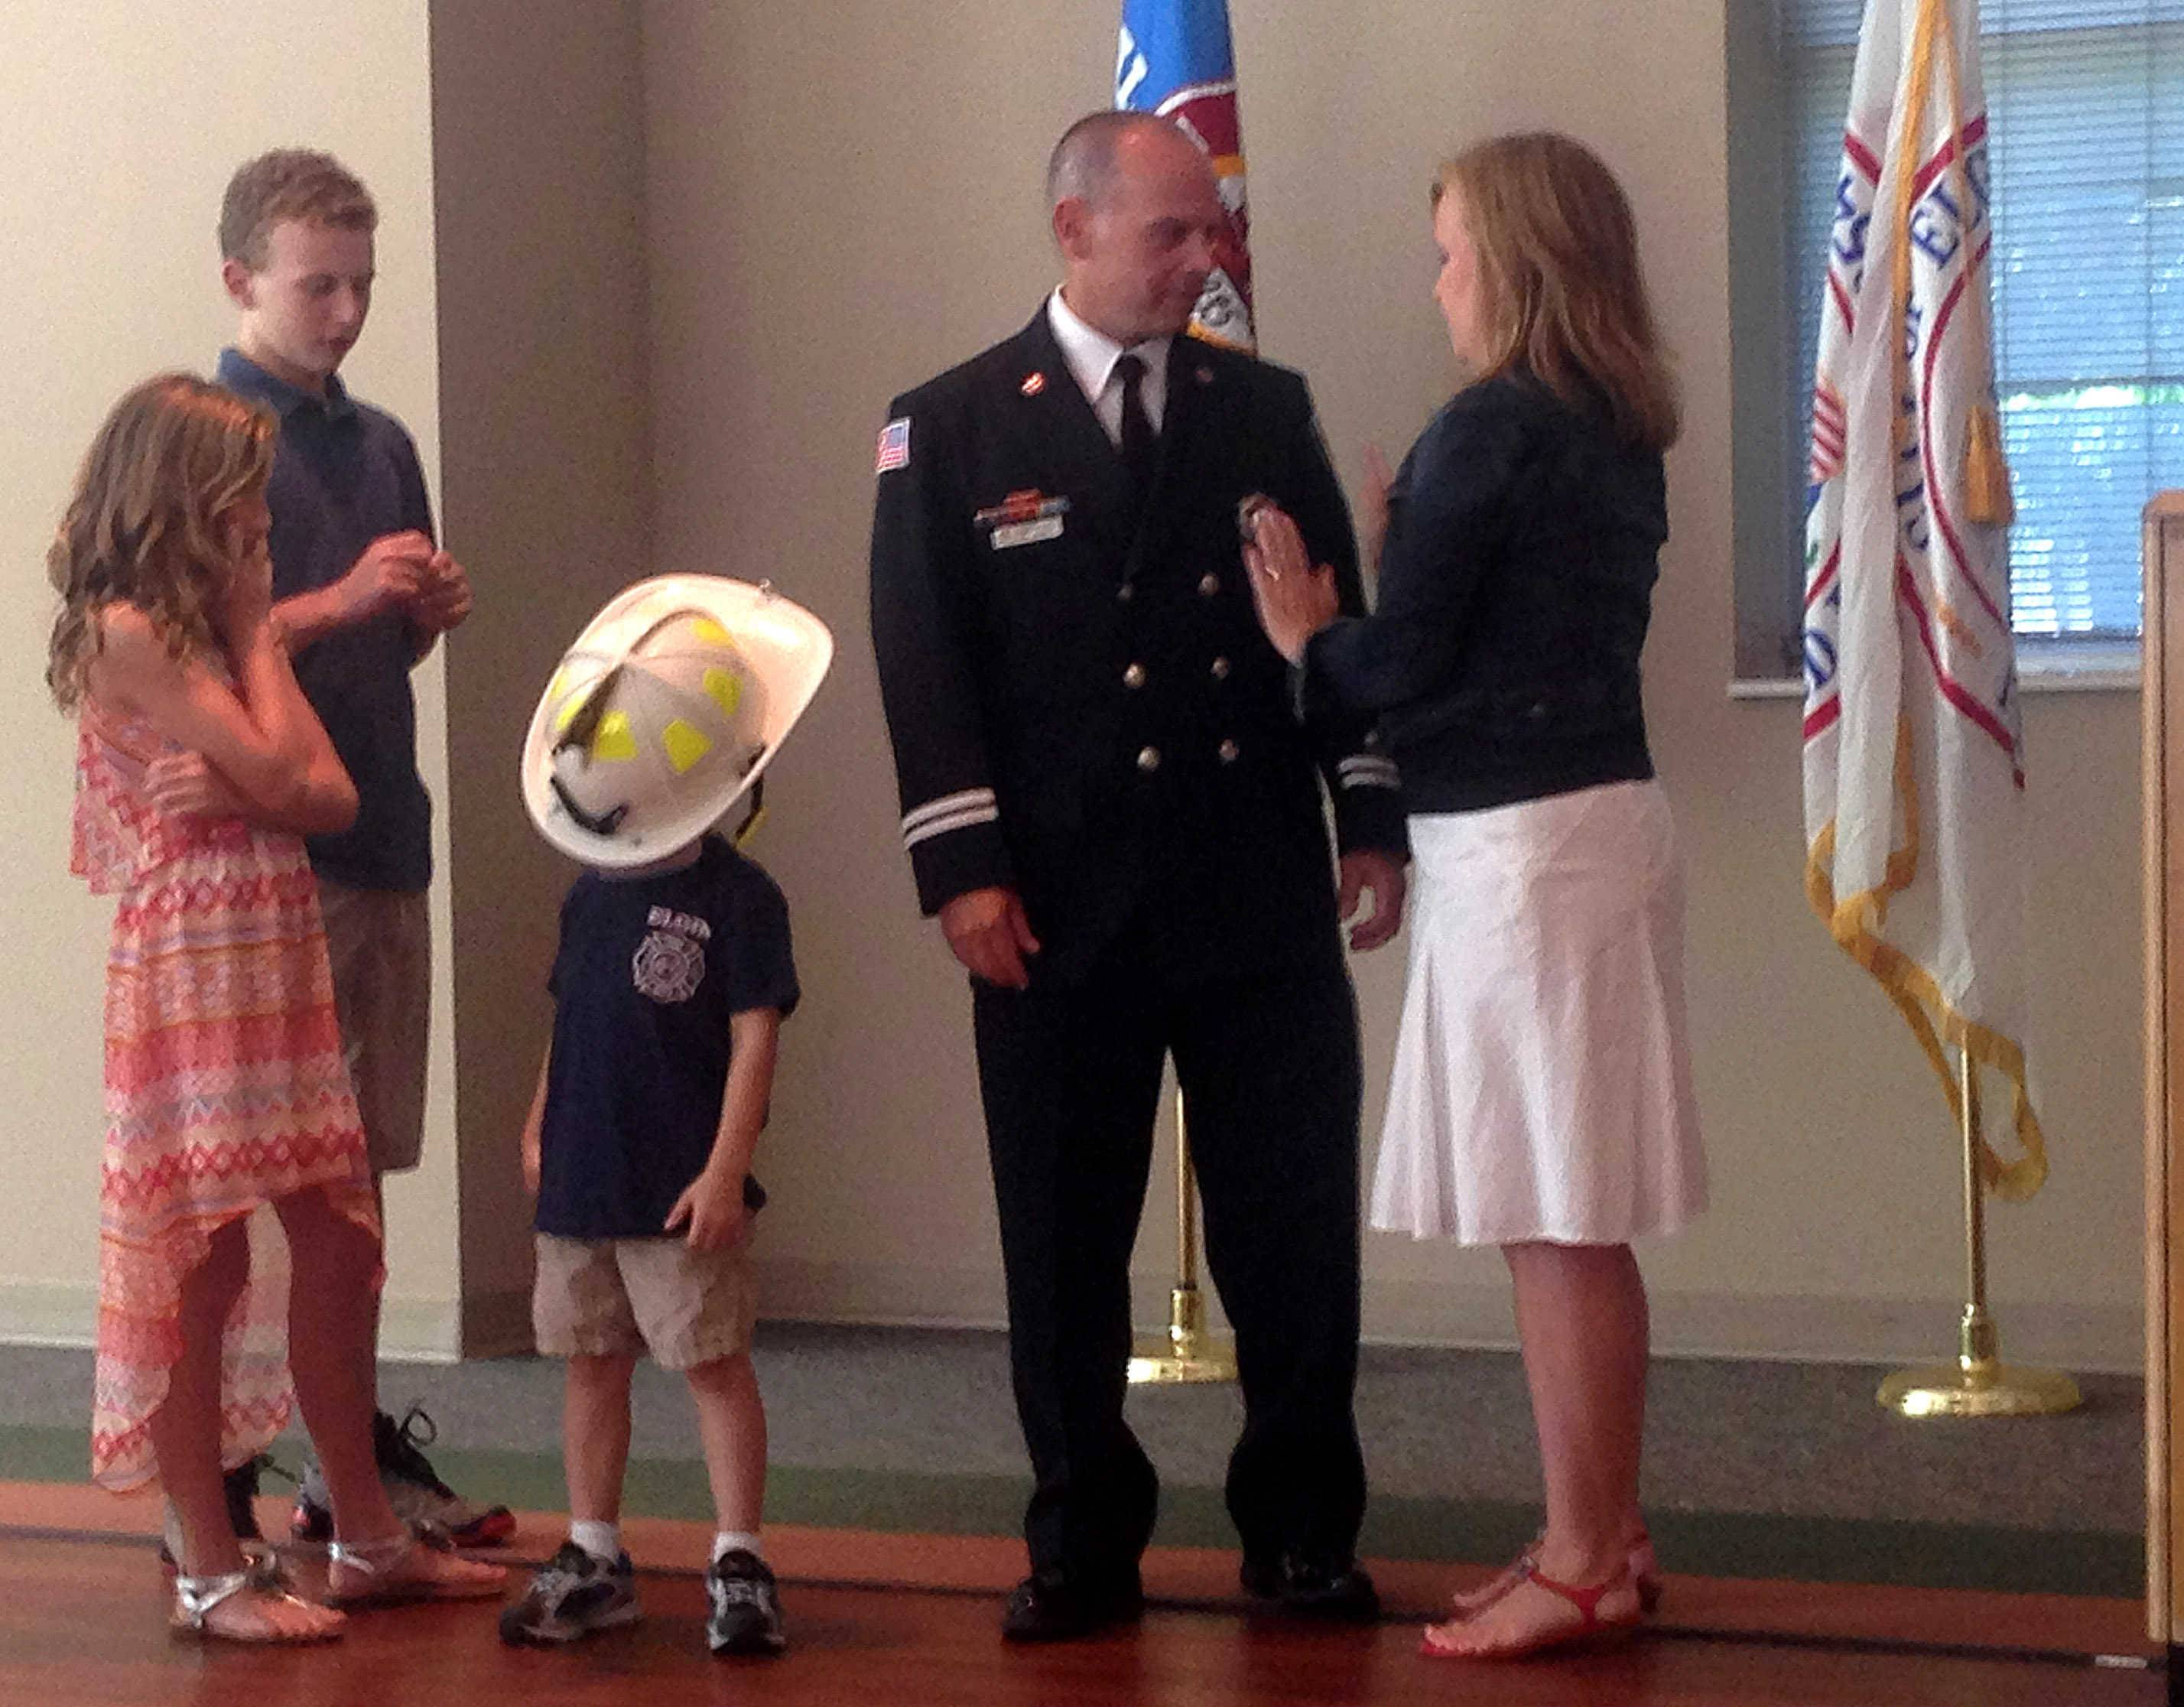 Newly promoted Elgin Fire Capt. Dan Rink looks at his wife, Jennifer, after she pinned his badge at his promotion ceremony Friday at The Centre of Elgin. Their children are, from left, Kendall, Kevin and Alex.